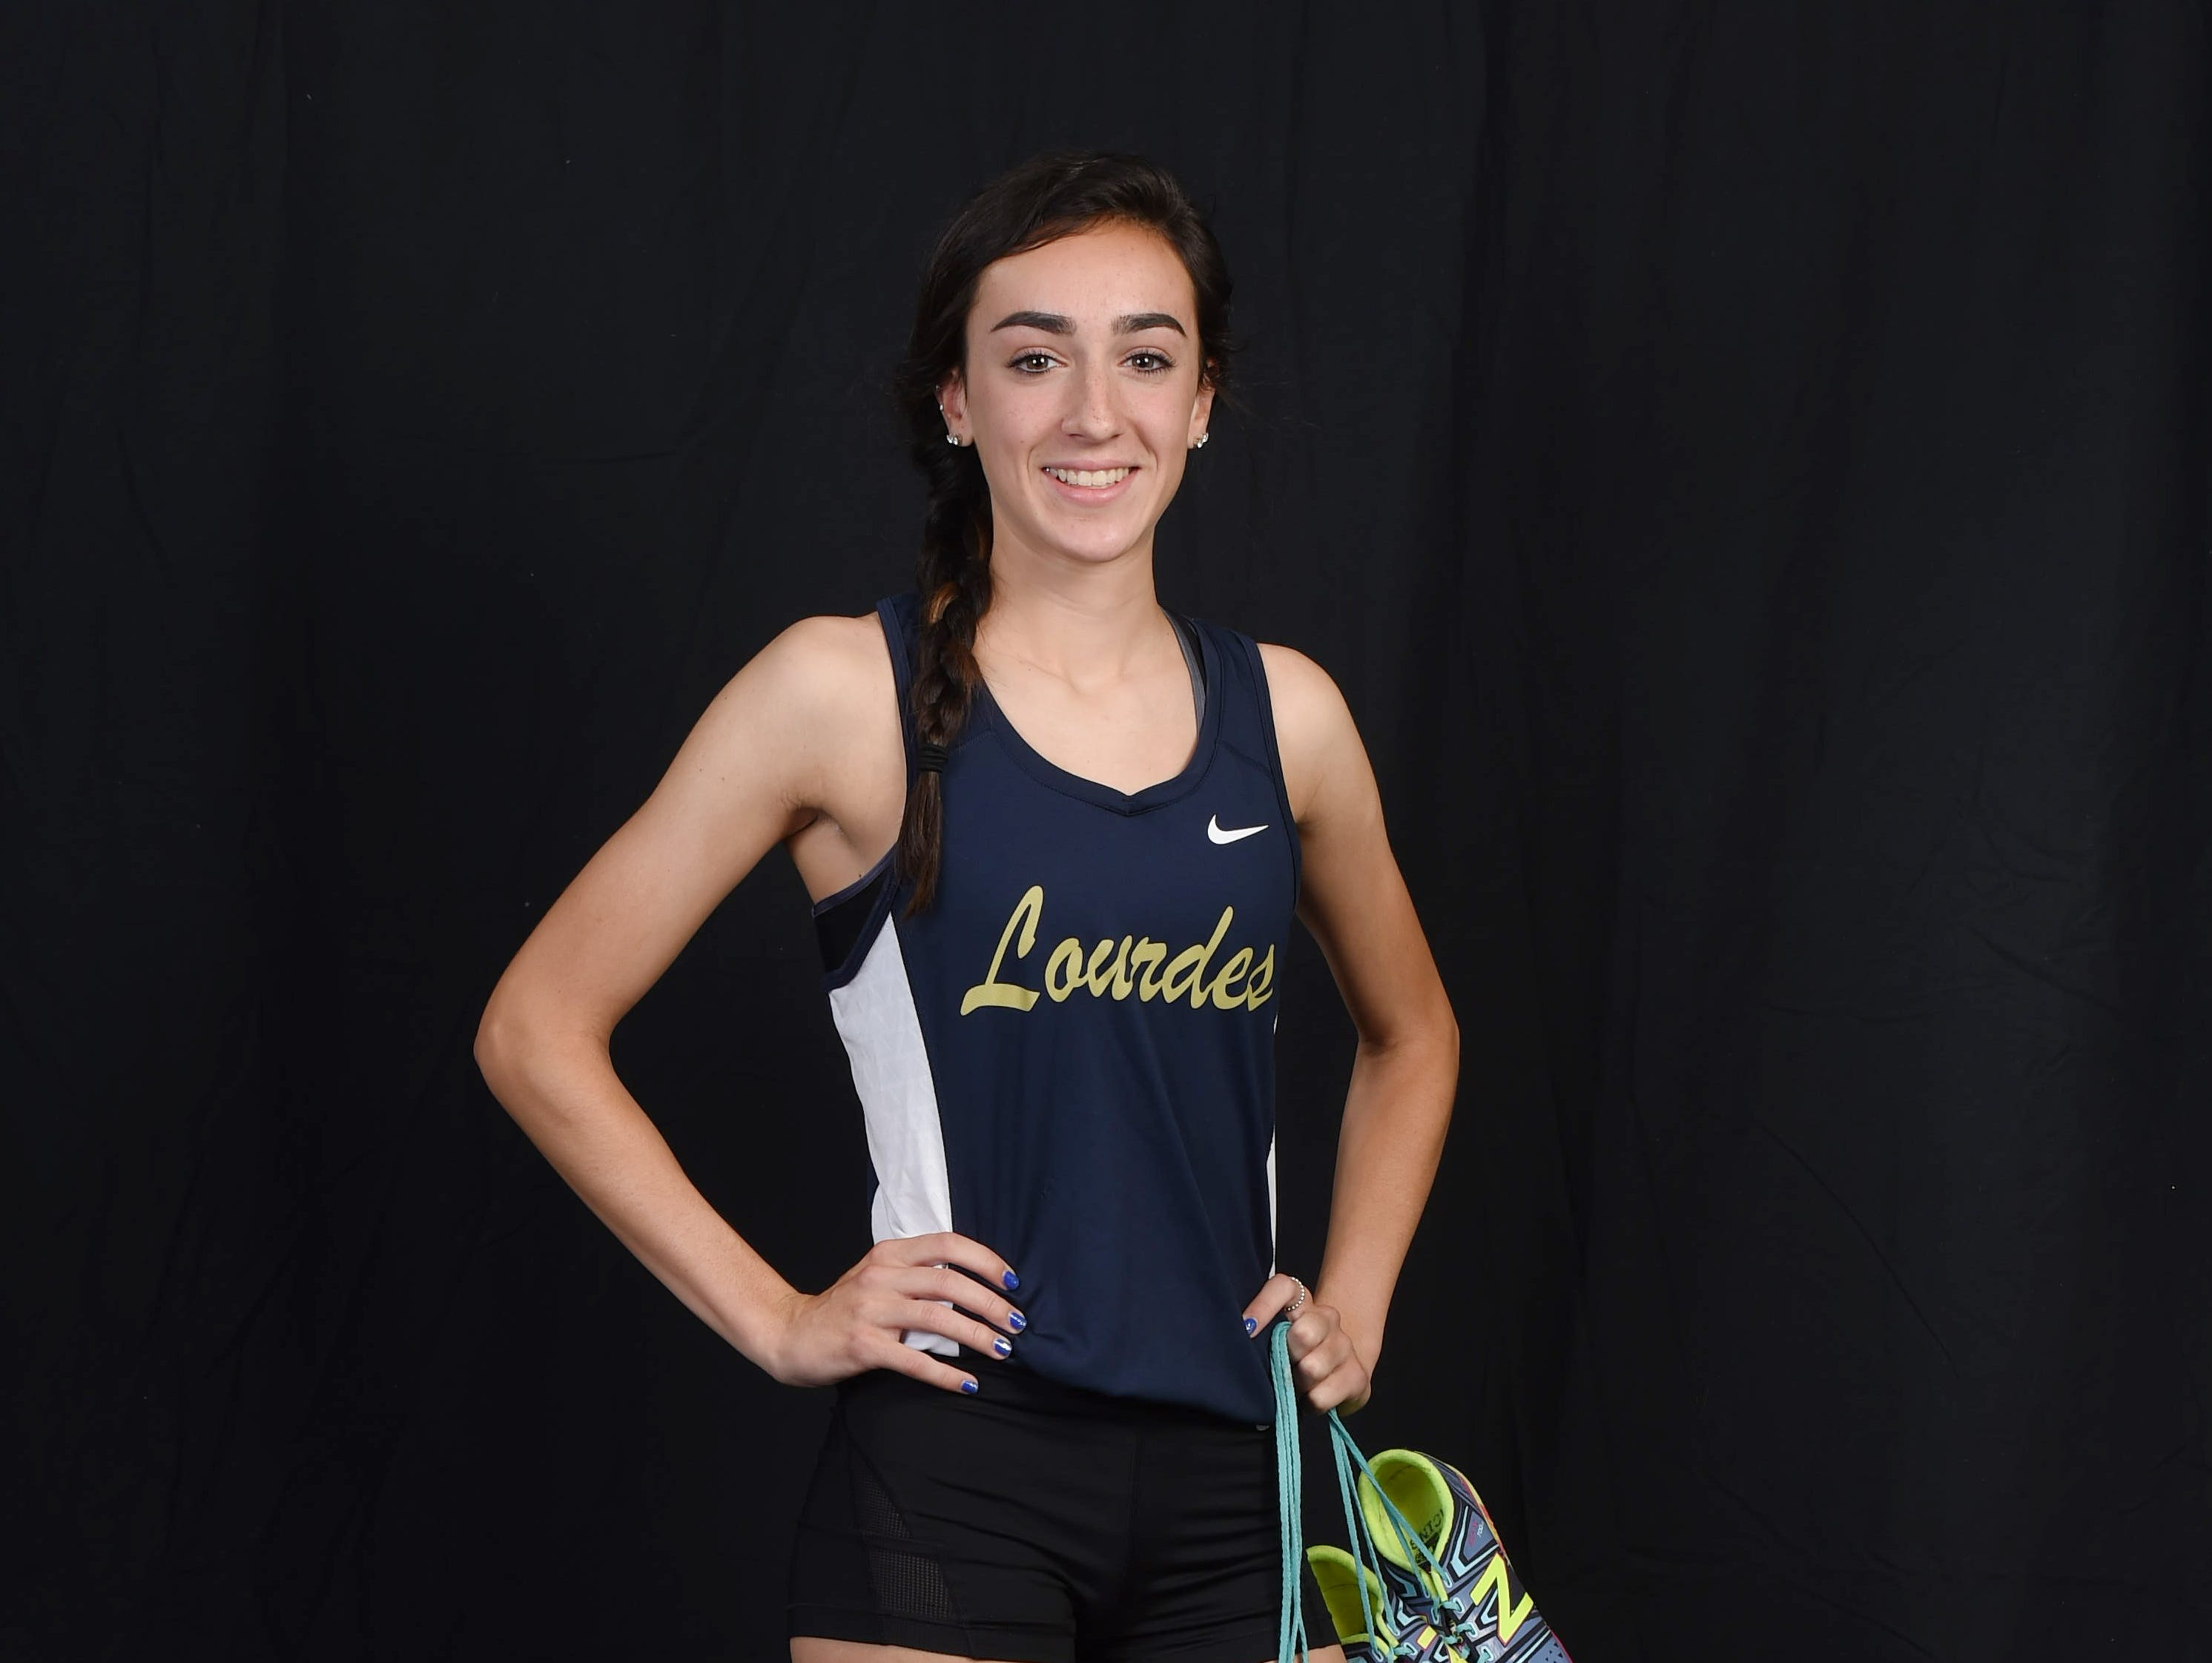 Caroline Timm, player of the year, Our Lady of Lourdes track & field